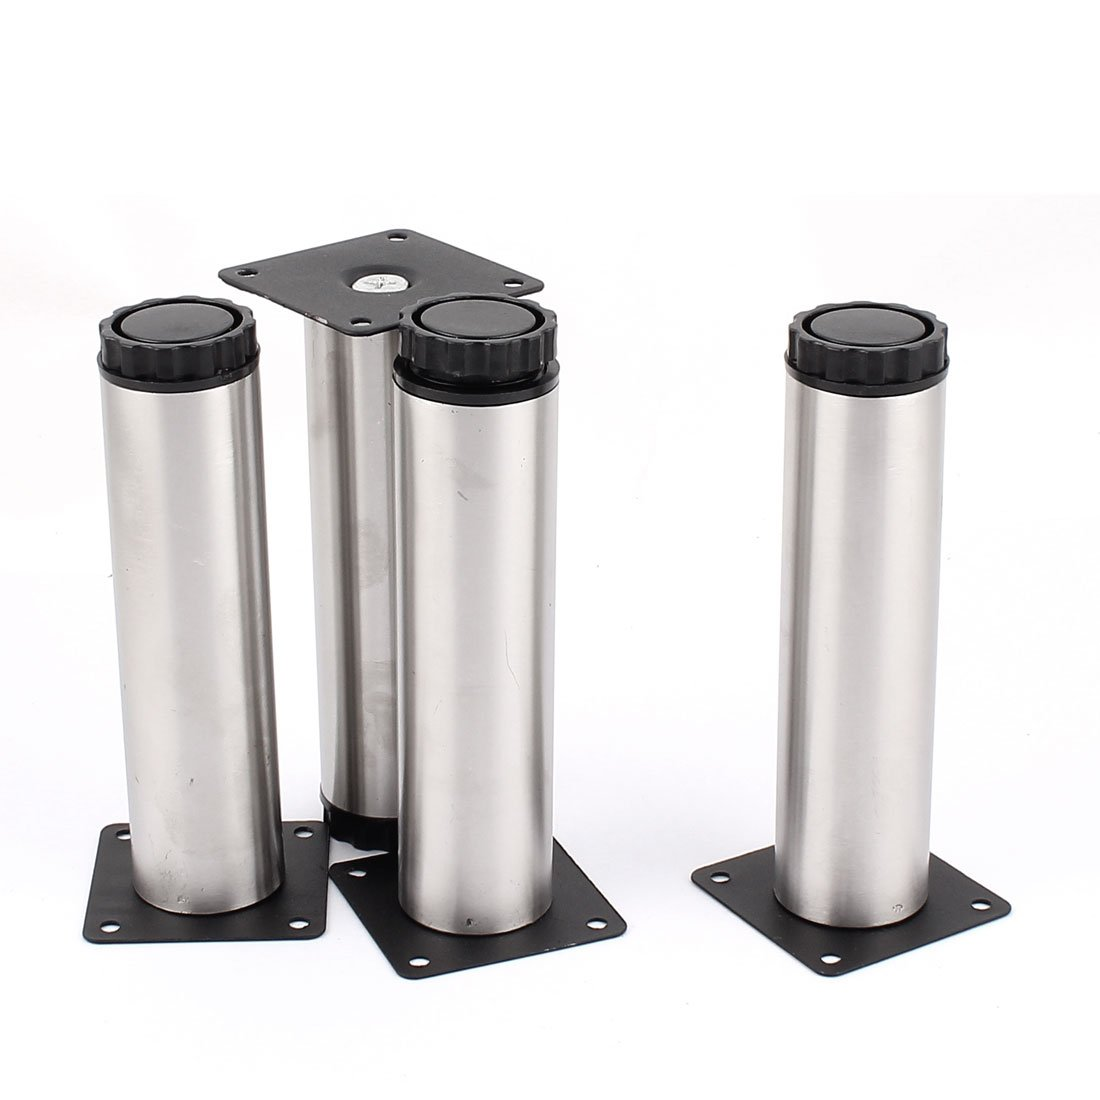 uxcell Sofa Chair Tea Table Bed 38mm x 150mm Adjustable Cabinet Leg 4pcs